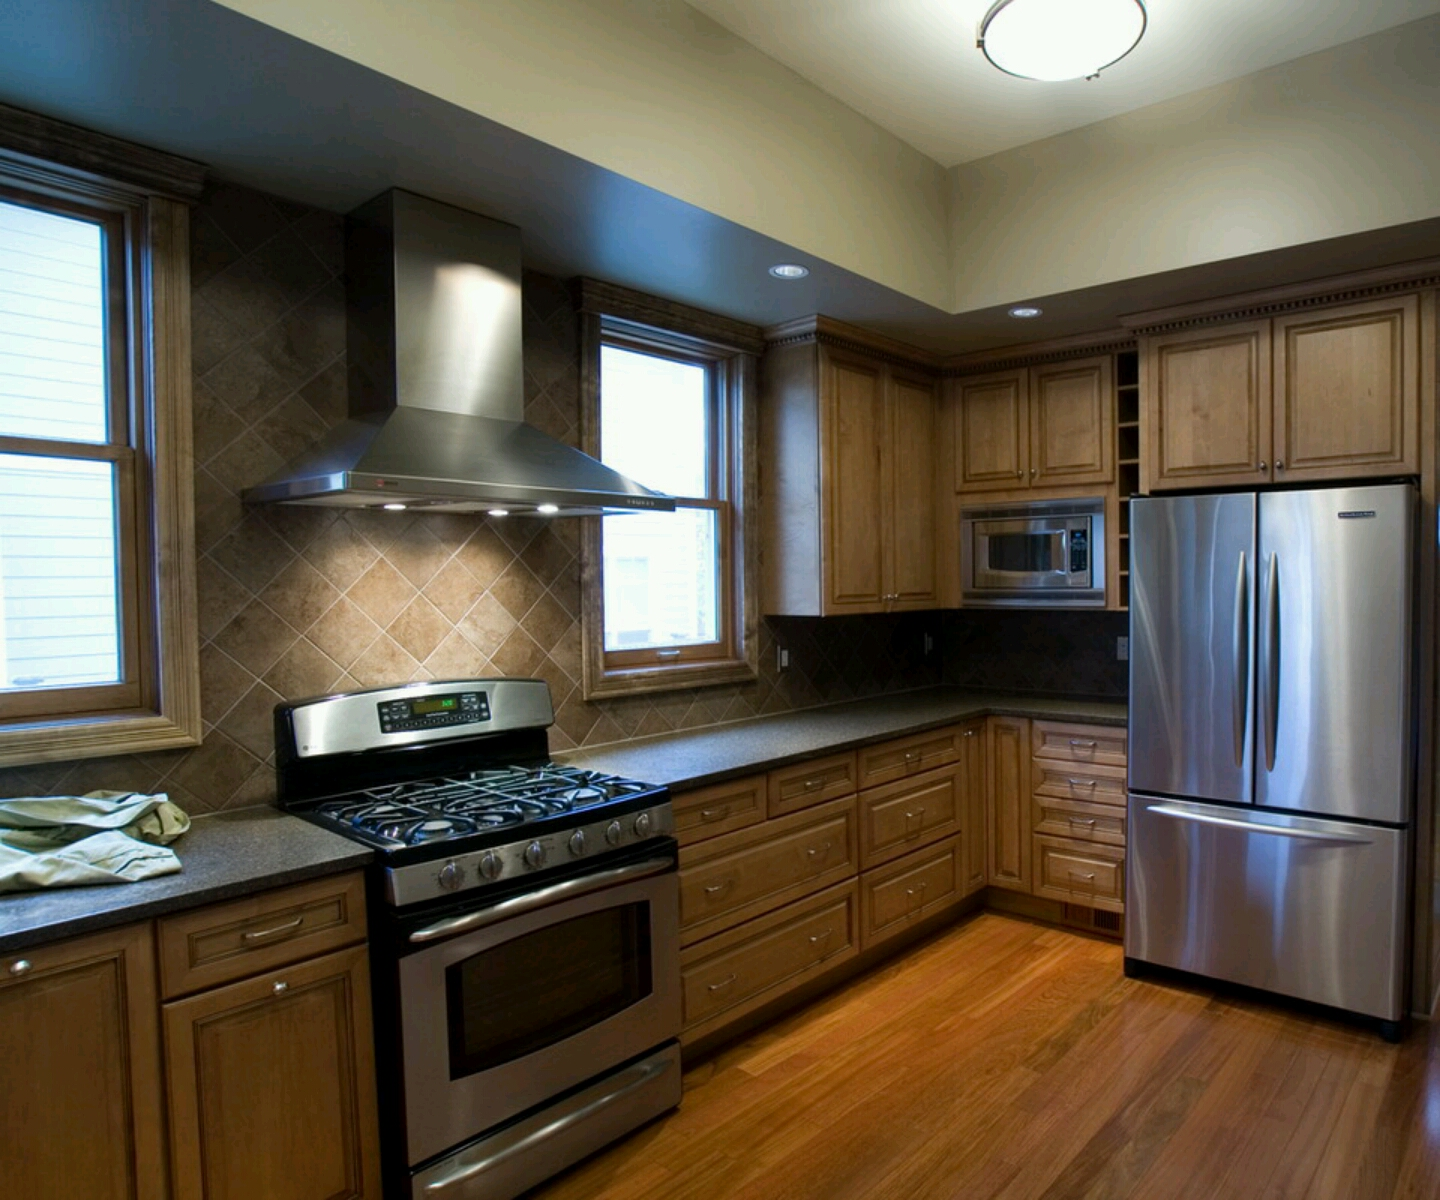 Photos Of Modern Kitchens